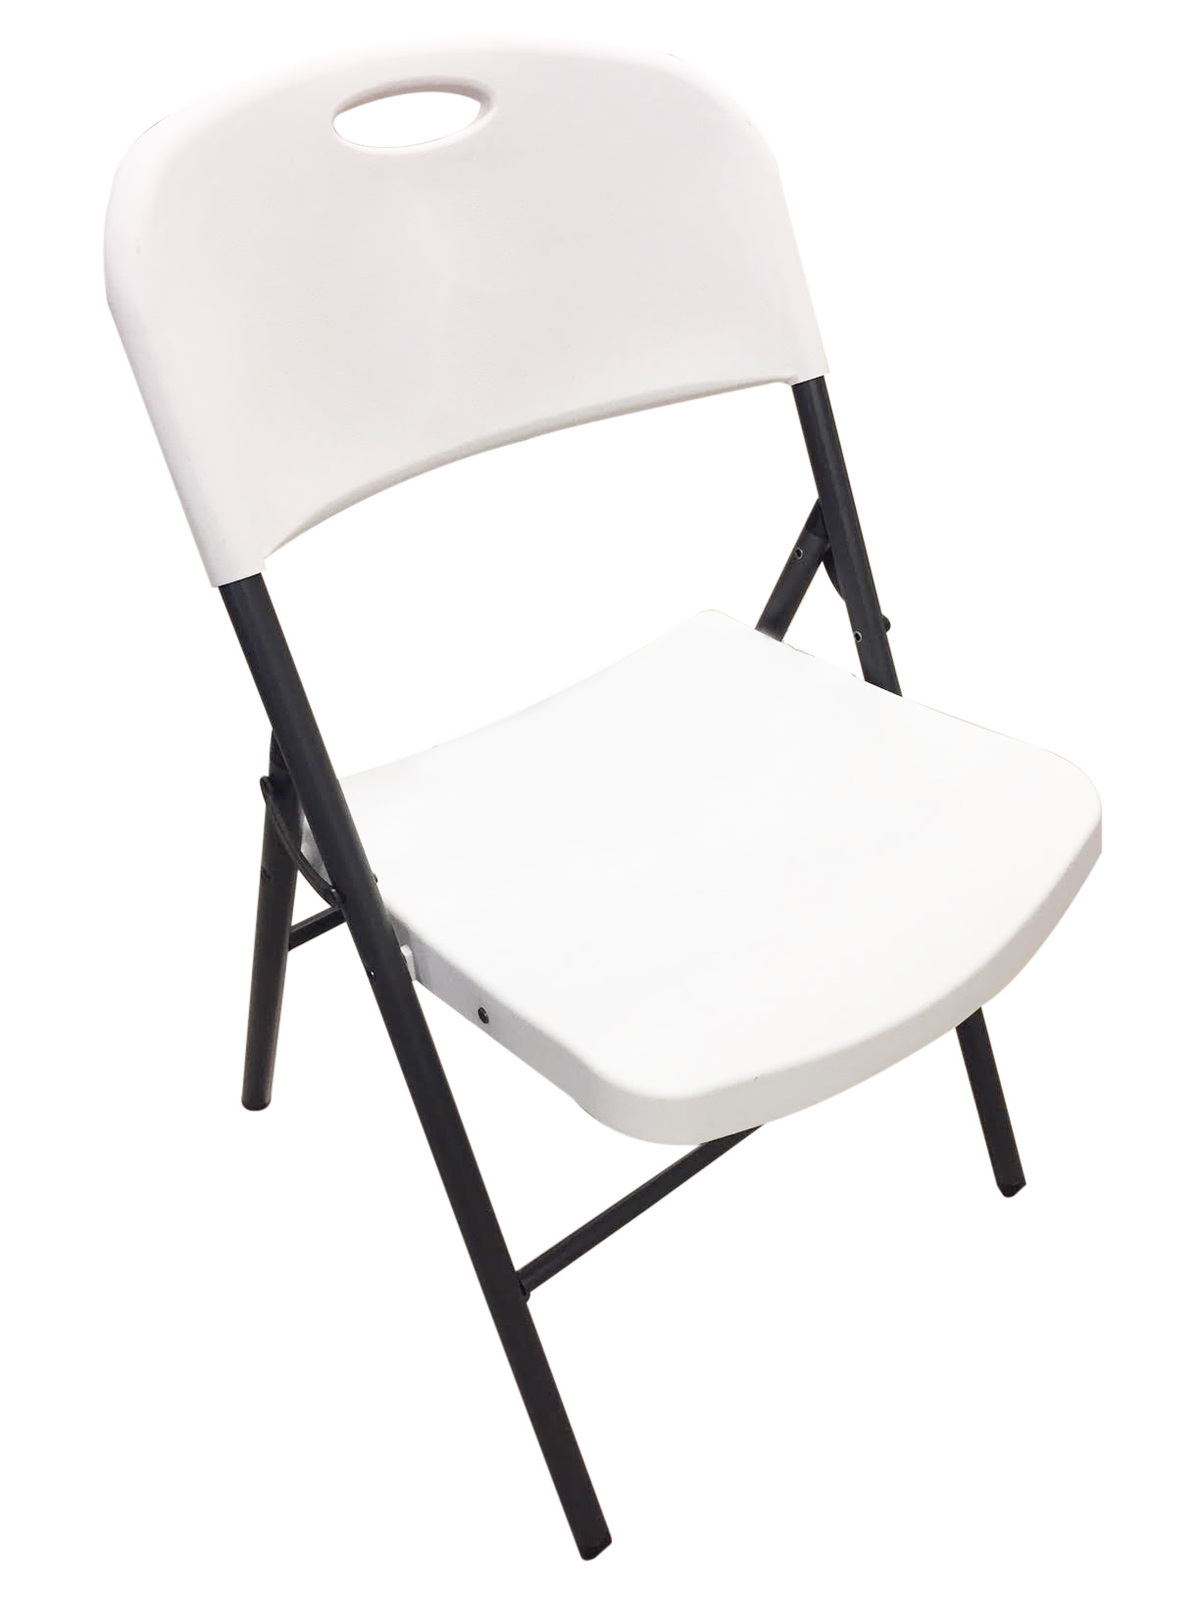 Lifetime Chair Oztrail Lifetime Super Chair